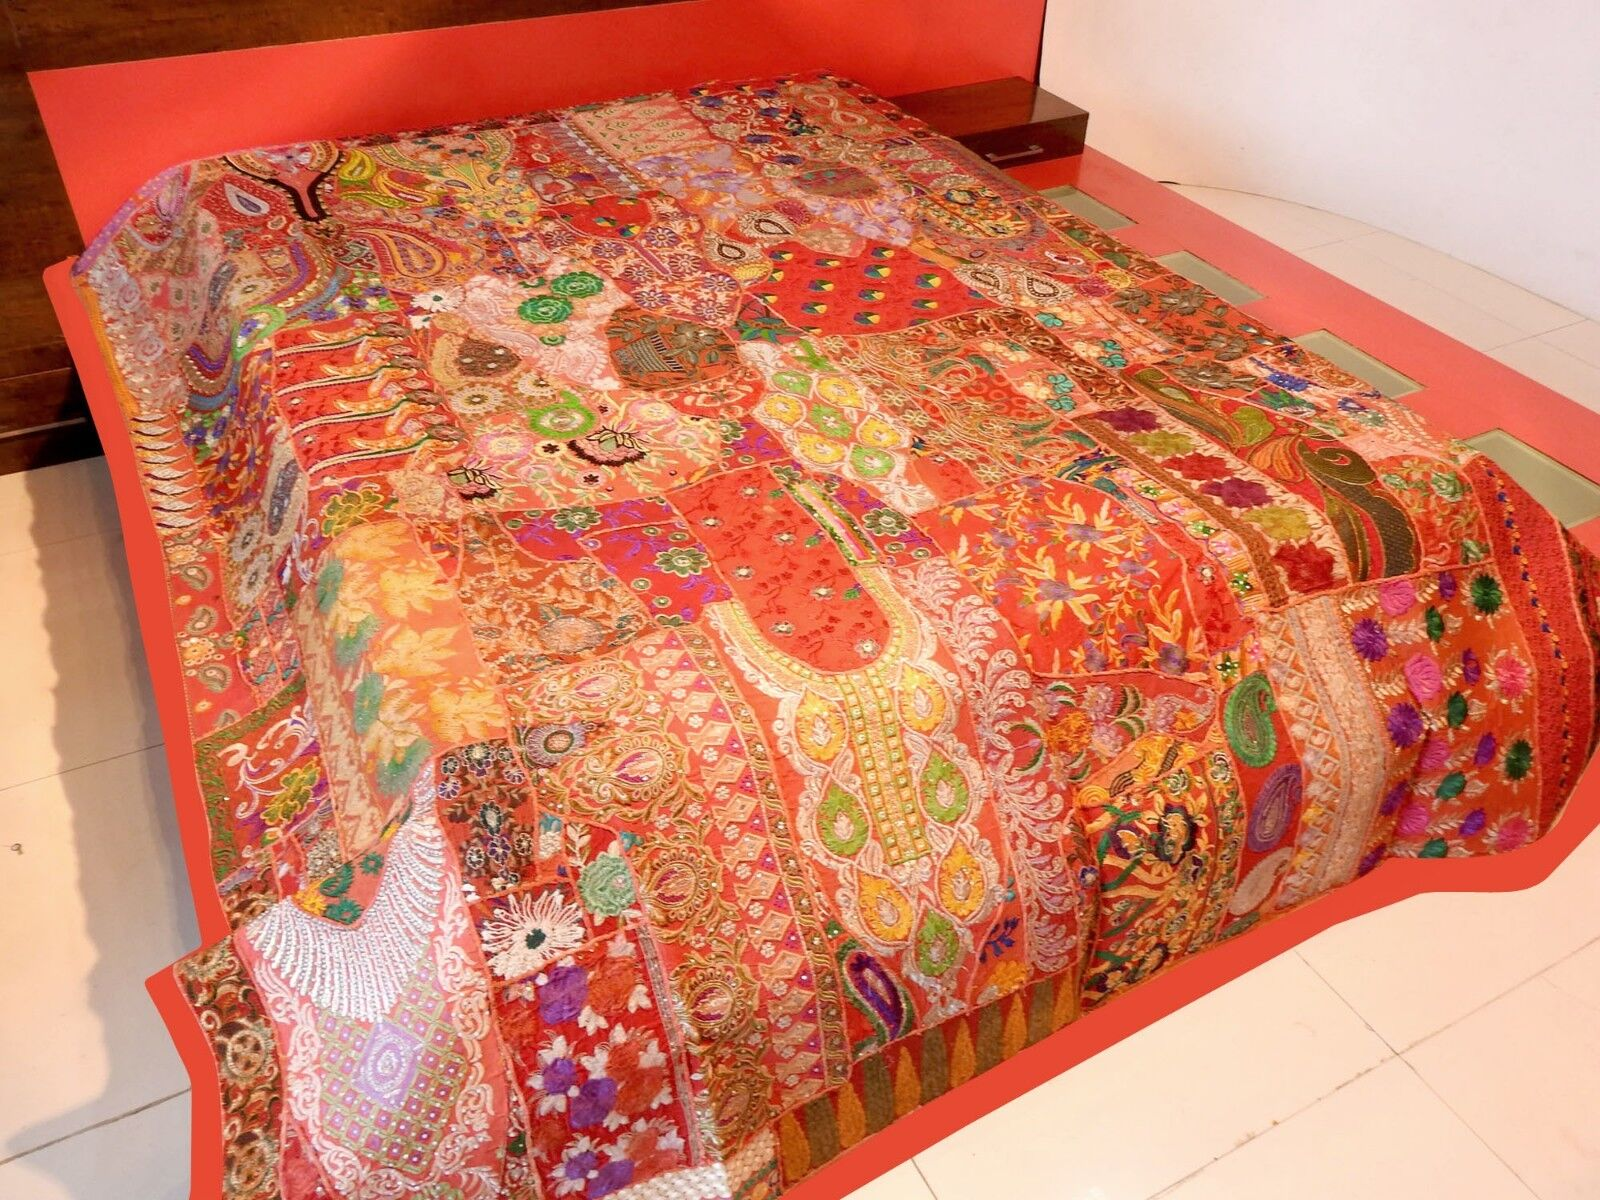 Vintage Patchwork Bedspread Hand Embroidery Bed Cover, Wall Hanging Curtain BS50